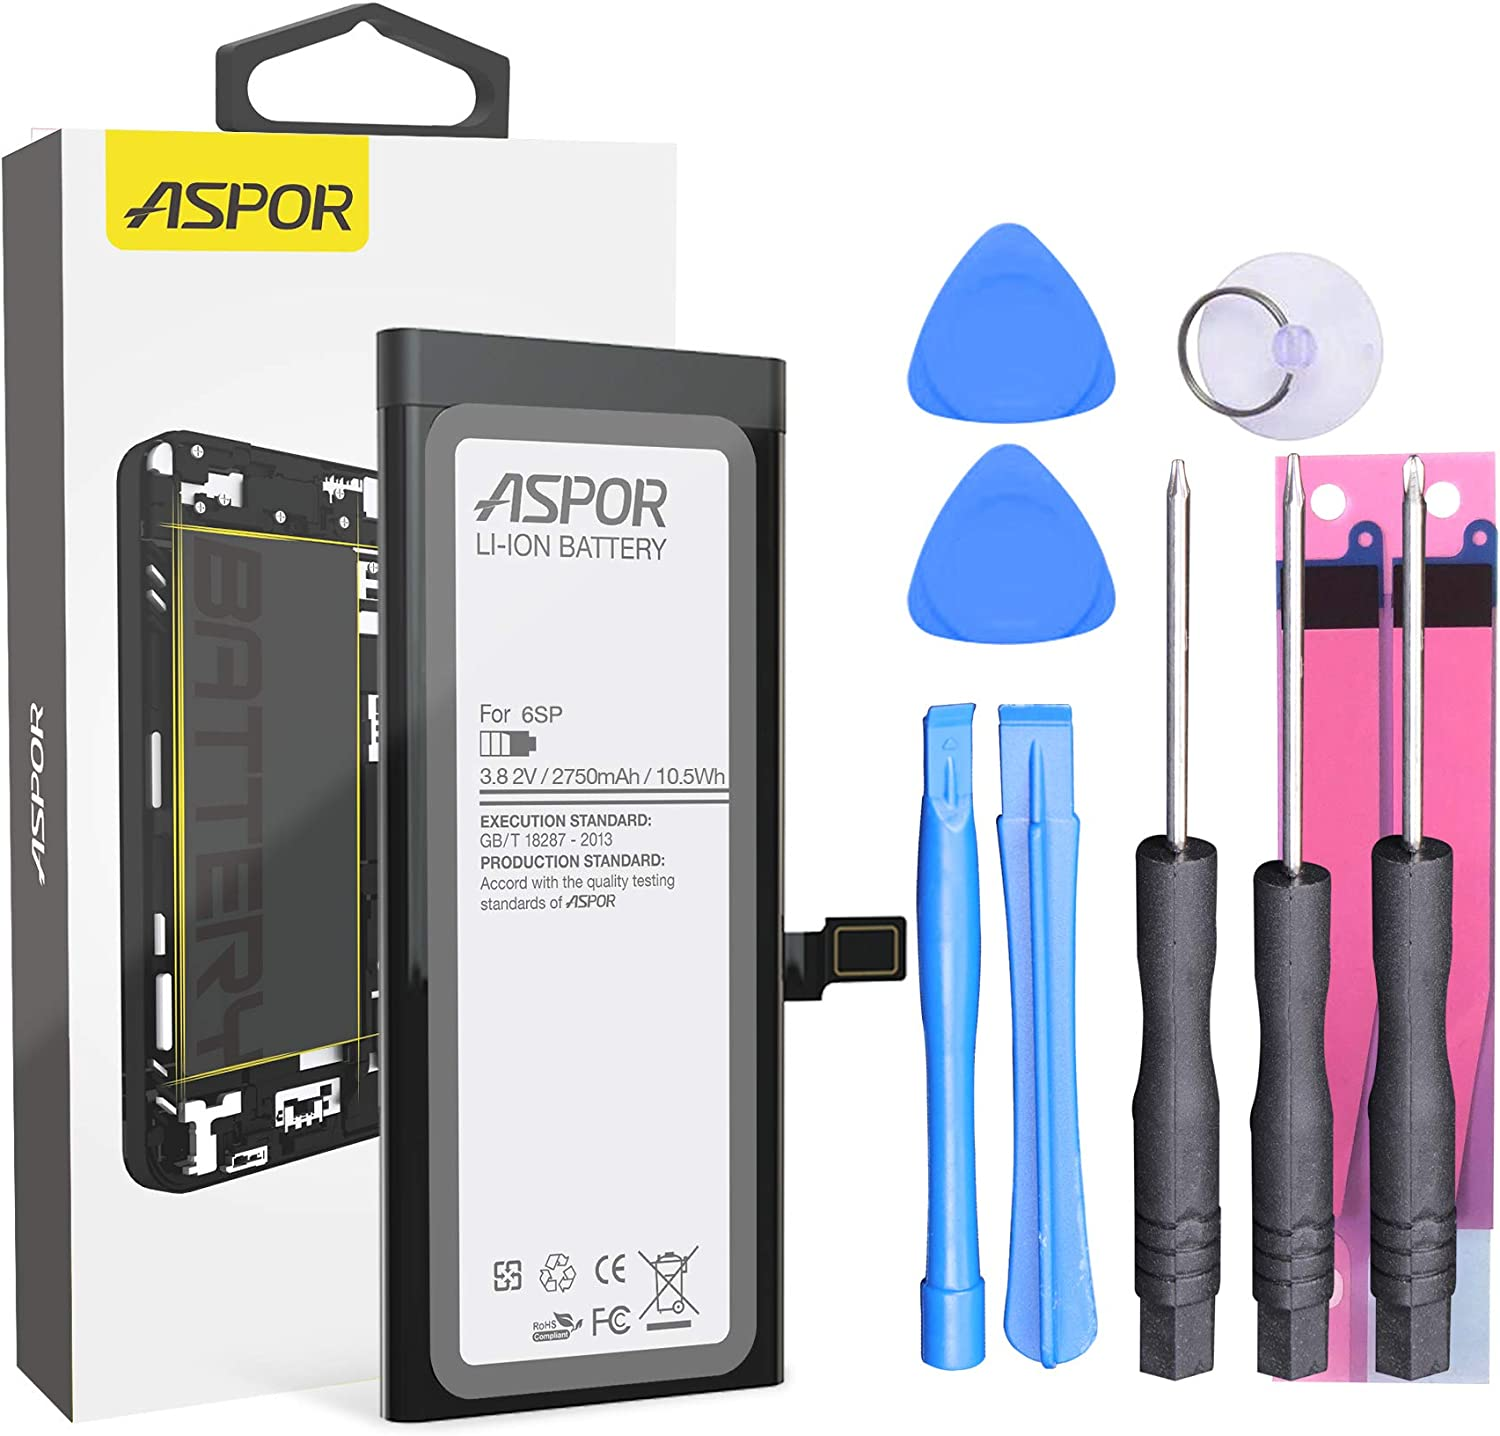 ASPOR Battery Replacement Compatible with iPhone 6S Plus, 2750 mAh Battery for iPhone 6S Plus with Complete Repair Tool Kits & Adhesive Strips